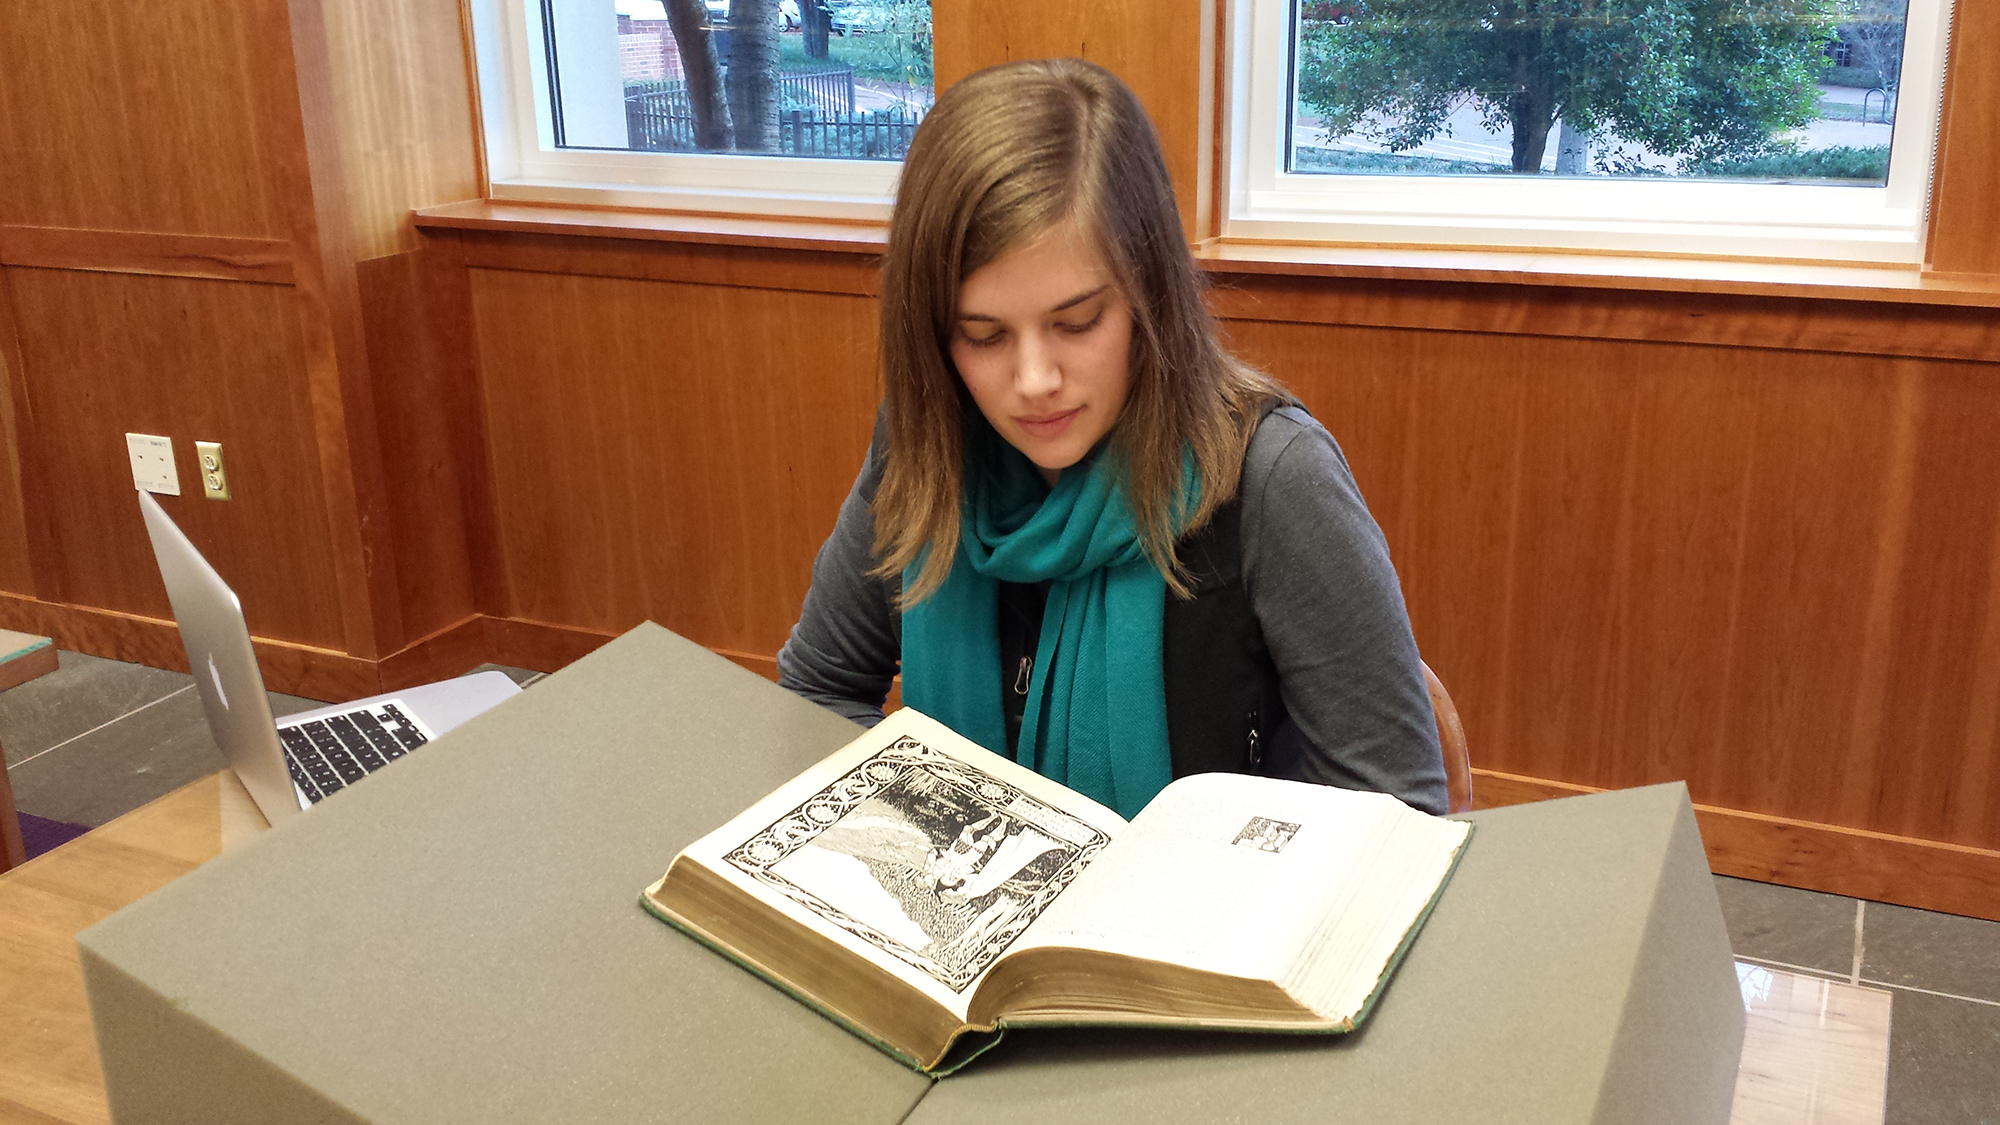 A student reading a book on a display stand in a wooden paneled room